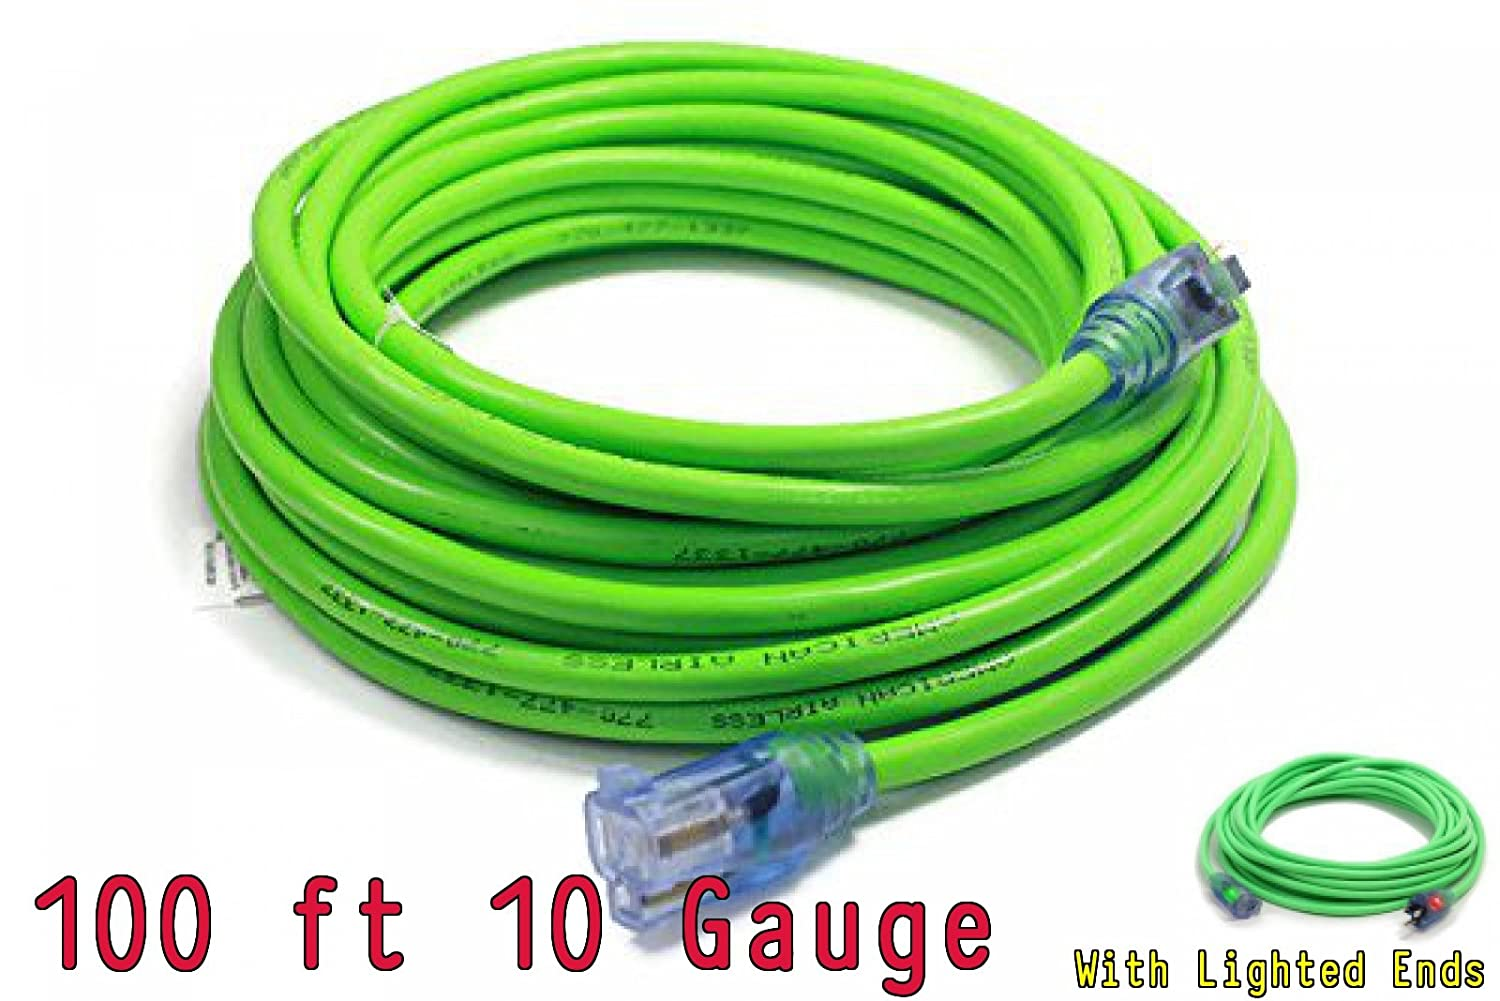 100 ft 10 Gauge, green 100 ft 10 Gauge Extension Cords 10 3 Contractor Grade 100 10 Gauge Power Extension Cord 10//3 Plug,extension cord With Lighted Ends